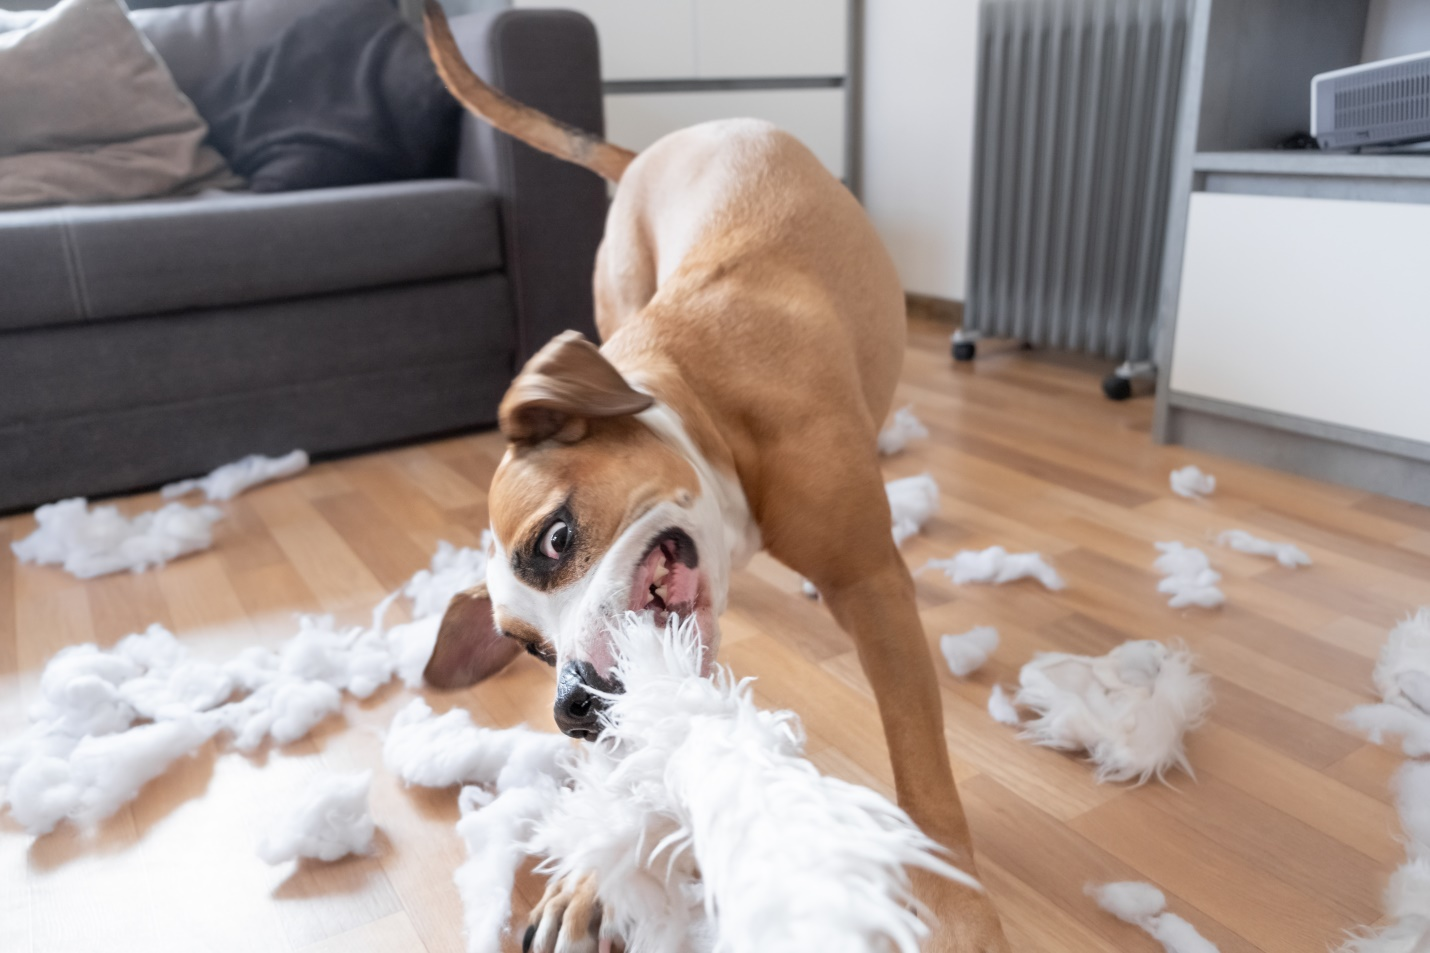 Funny Playful Dog Destroying A Fluffy Pillow At Home